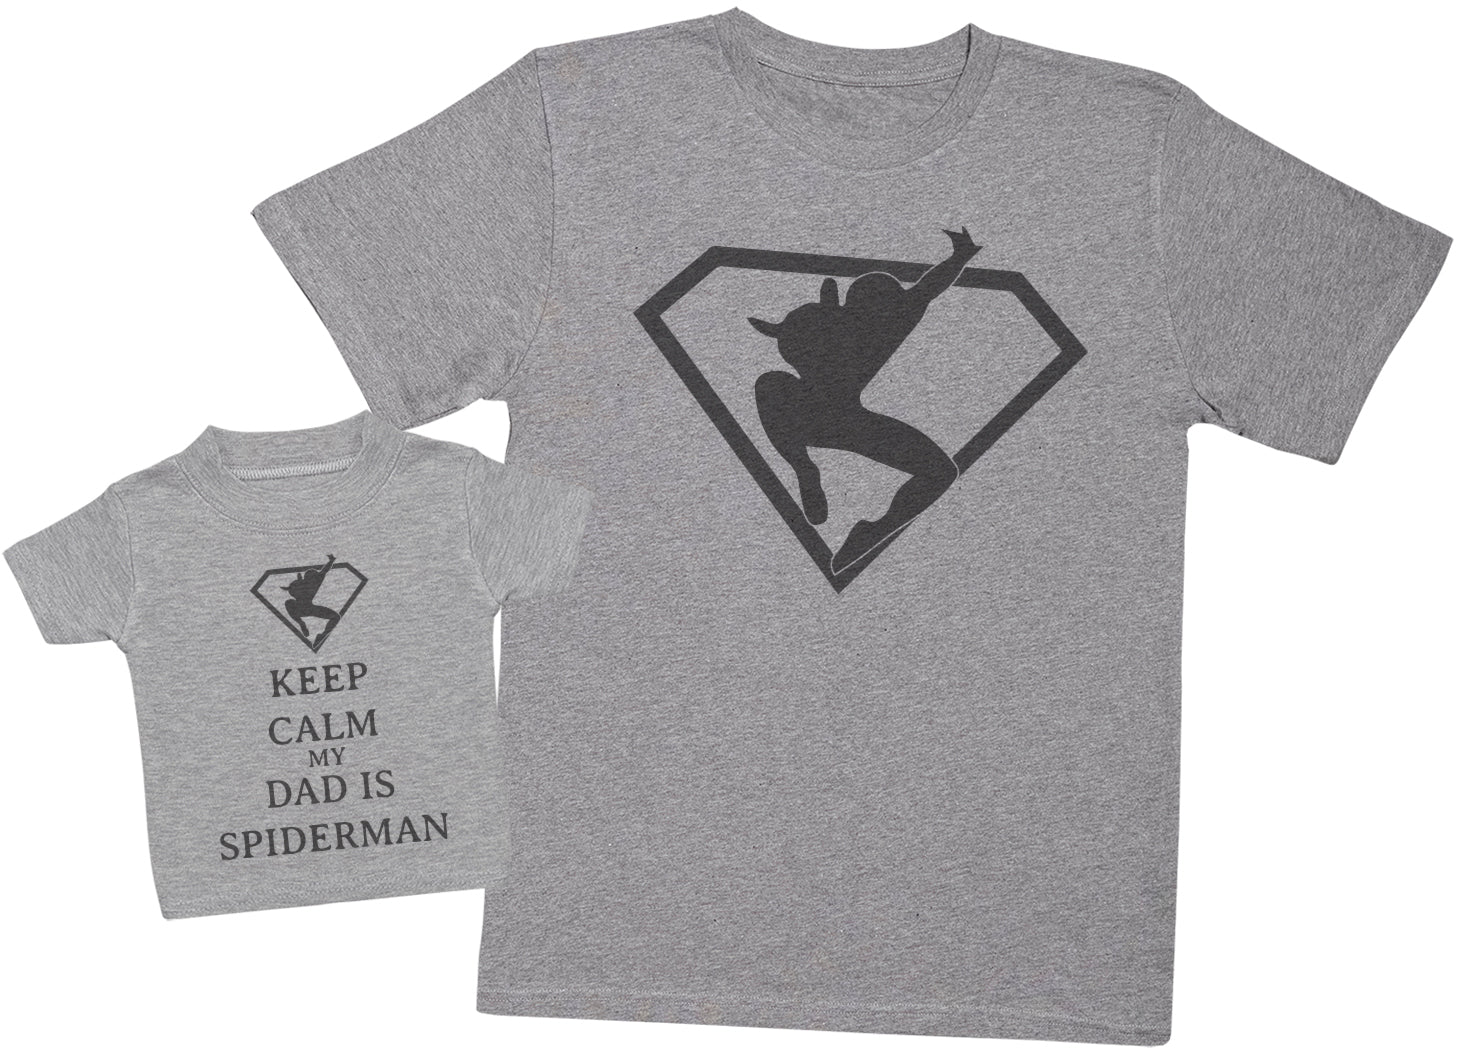 Keep Calm My Dad Is Spiderman Matching Father Baby Gift Set - Mens T Shirt & Baby T-Shirt